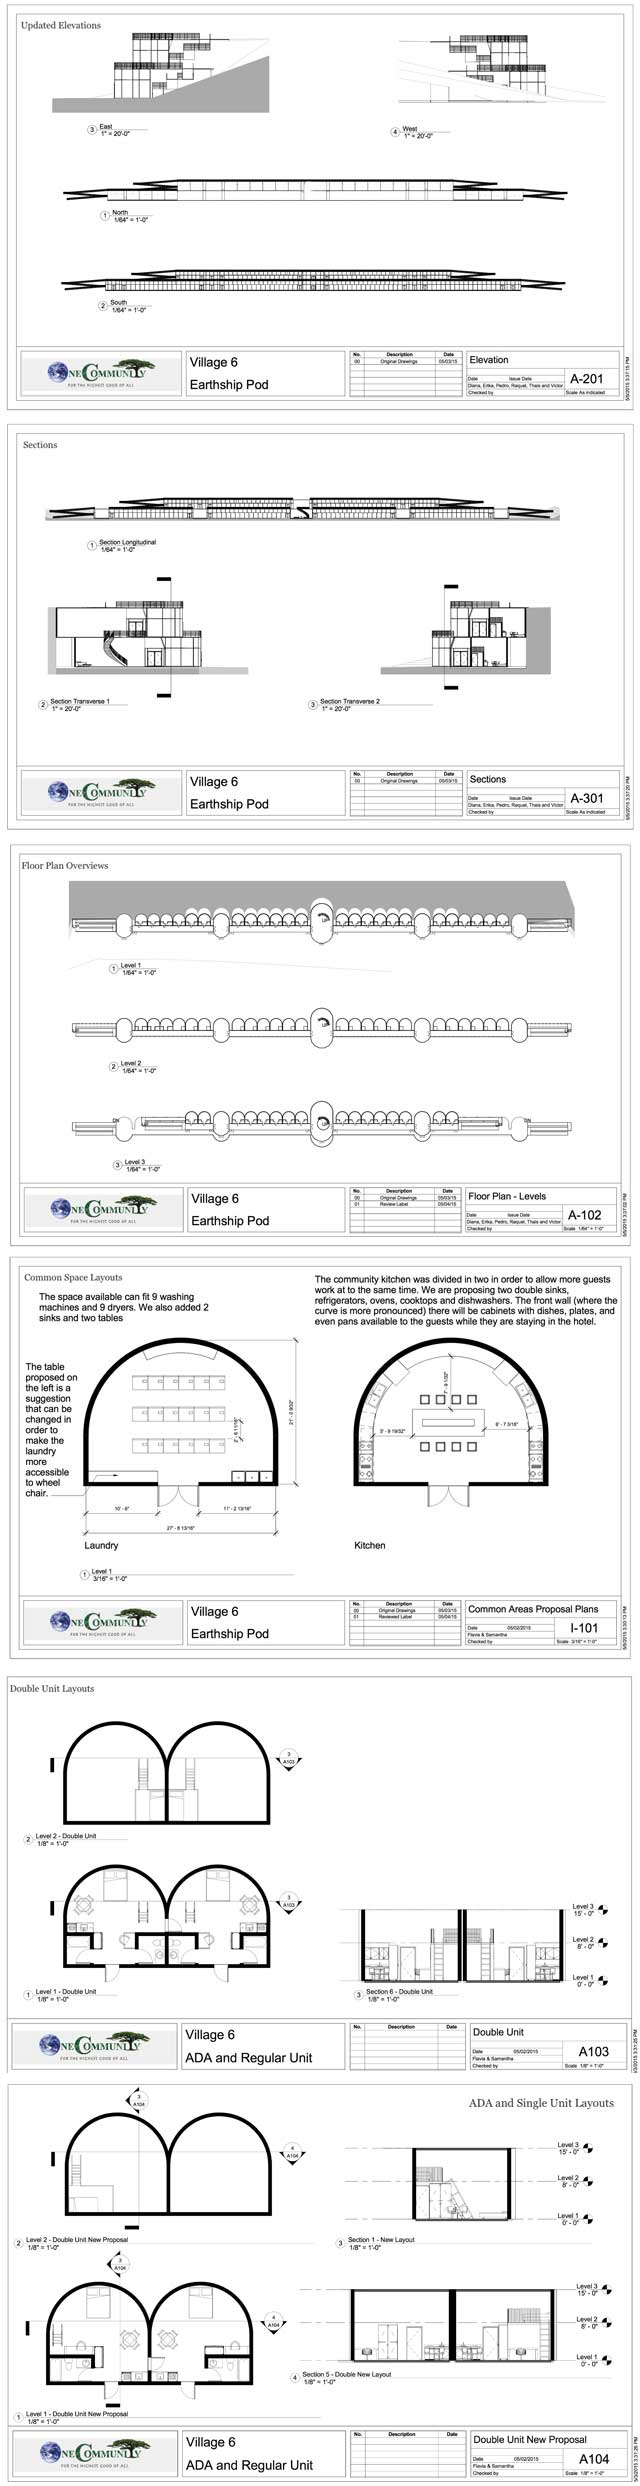 Second Round of Design Layouts for Earthship Village - Click to Visit Page, http://www.onecommunityglobal.org/earthship-village/